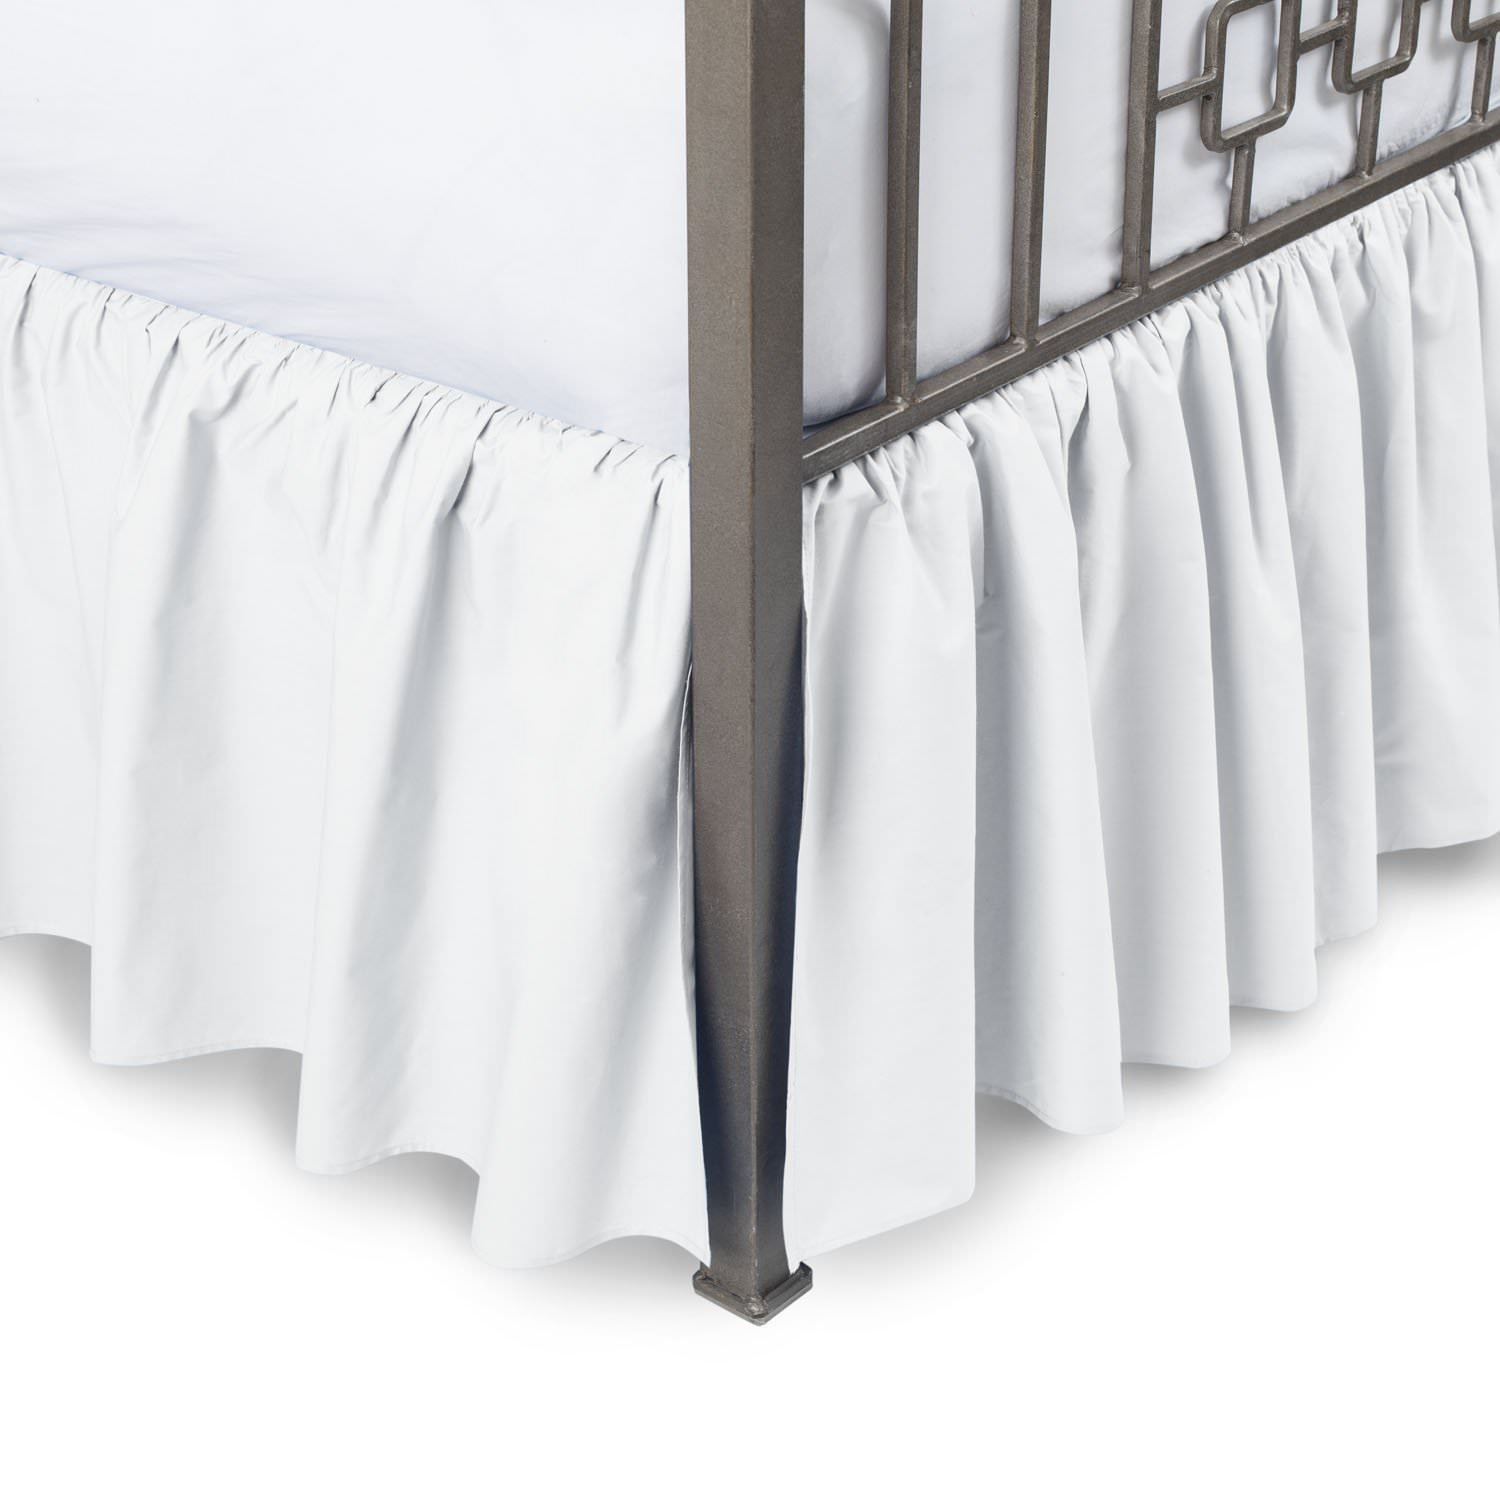 Hotel Quality 650TC Single Ply Egyptian cotton Twin XL Size 1pc Split Corner Dust Ruffle Bed Skirt With 16 Inch Drop Length, White Solid